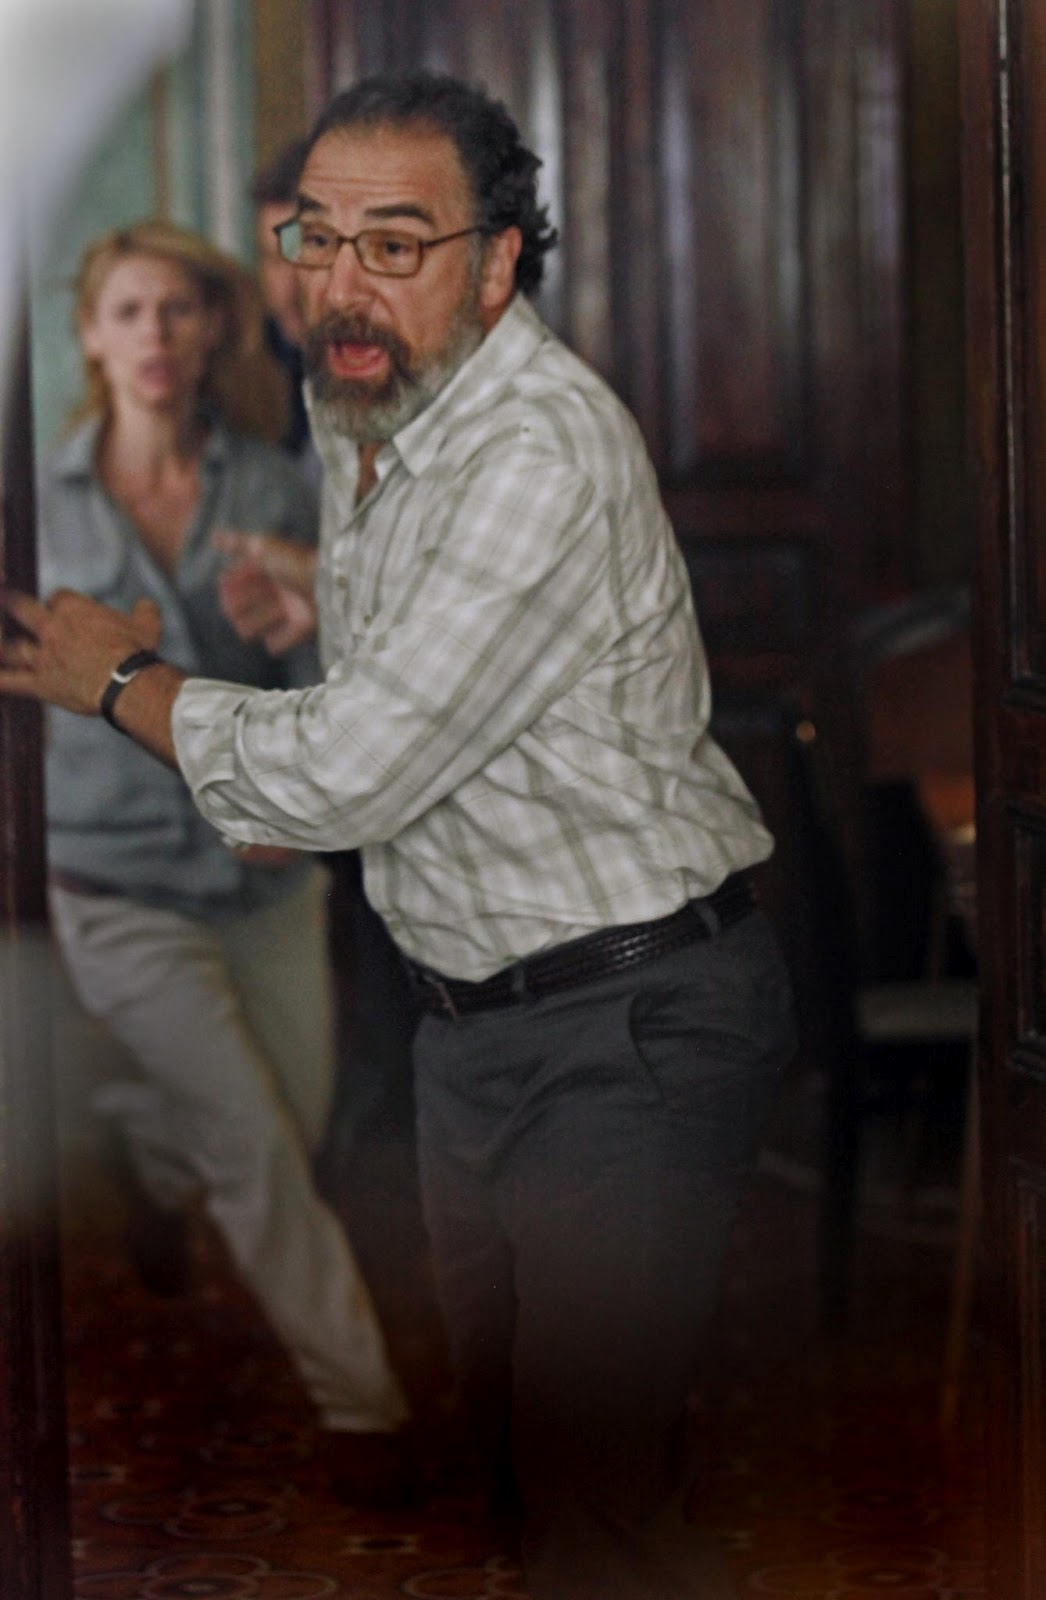 http://3.bp.blogspot.com/-6eZjAJPA954/UGNyiBYWH0I/AAAAAAAAa50/qCclXQA7Dt8/s1600/claire-danes-and-mandy-patinkin-in-homeland-large-picture.jpg